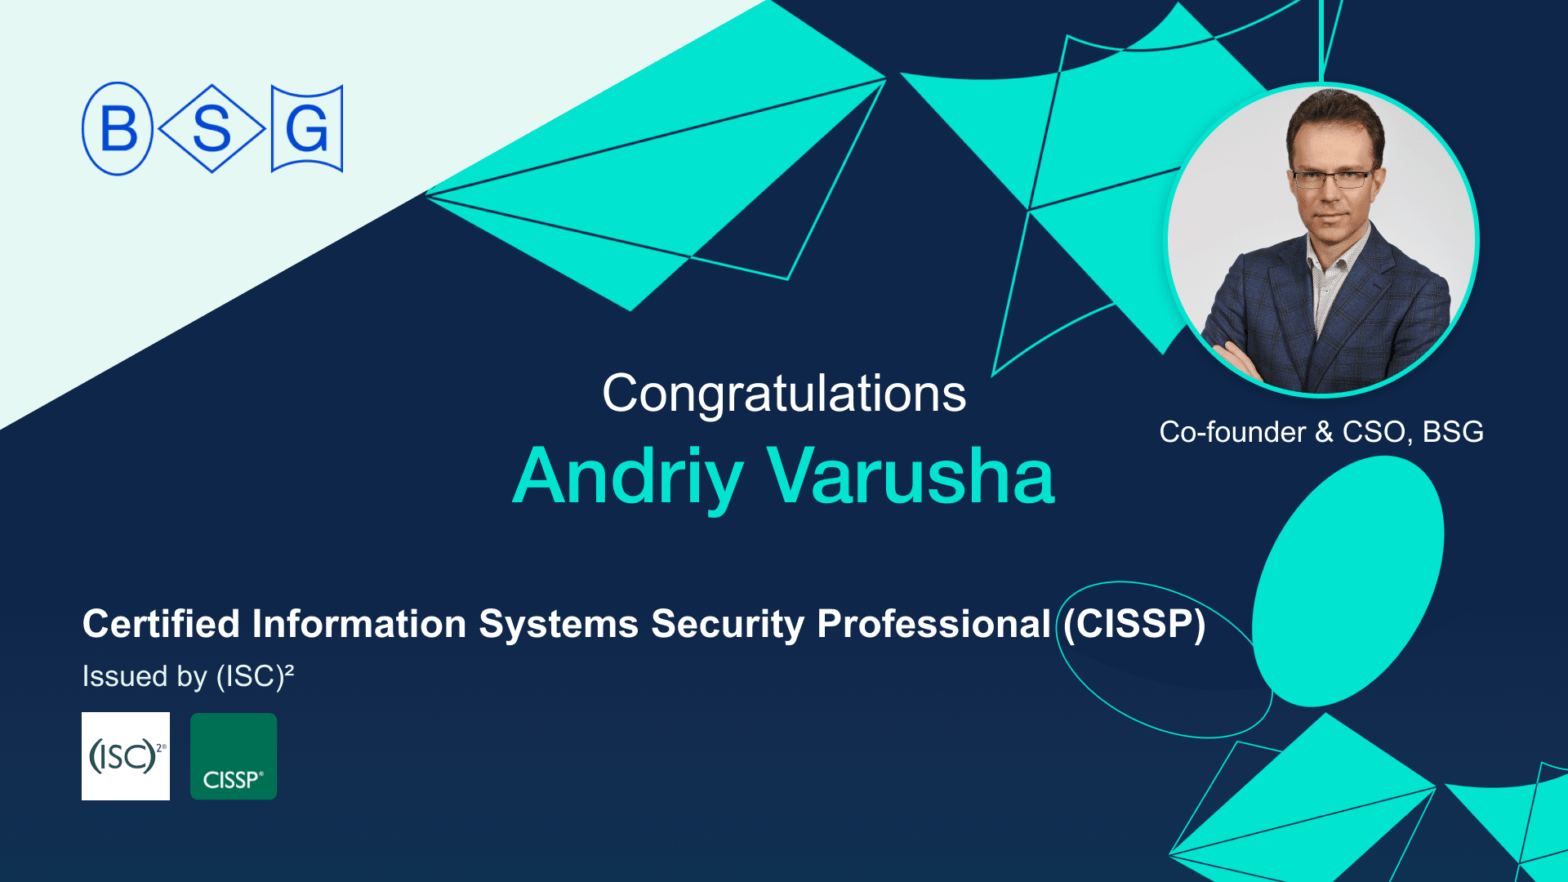 Andriy-Varusha-Certified-Information-Systems-Security-Professional-CISSP